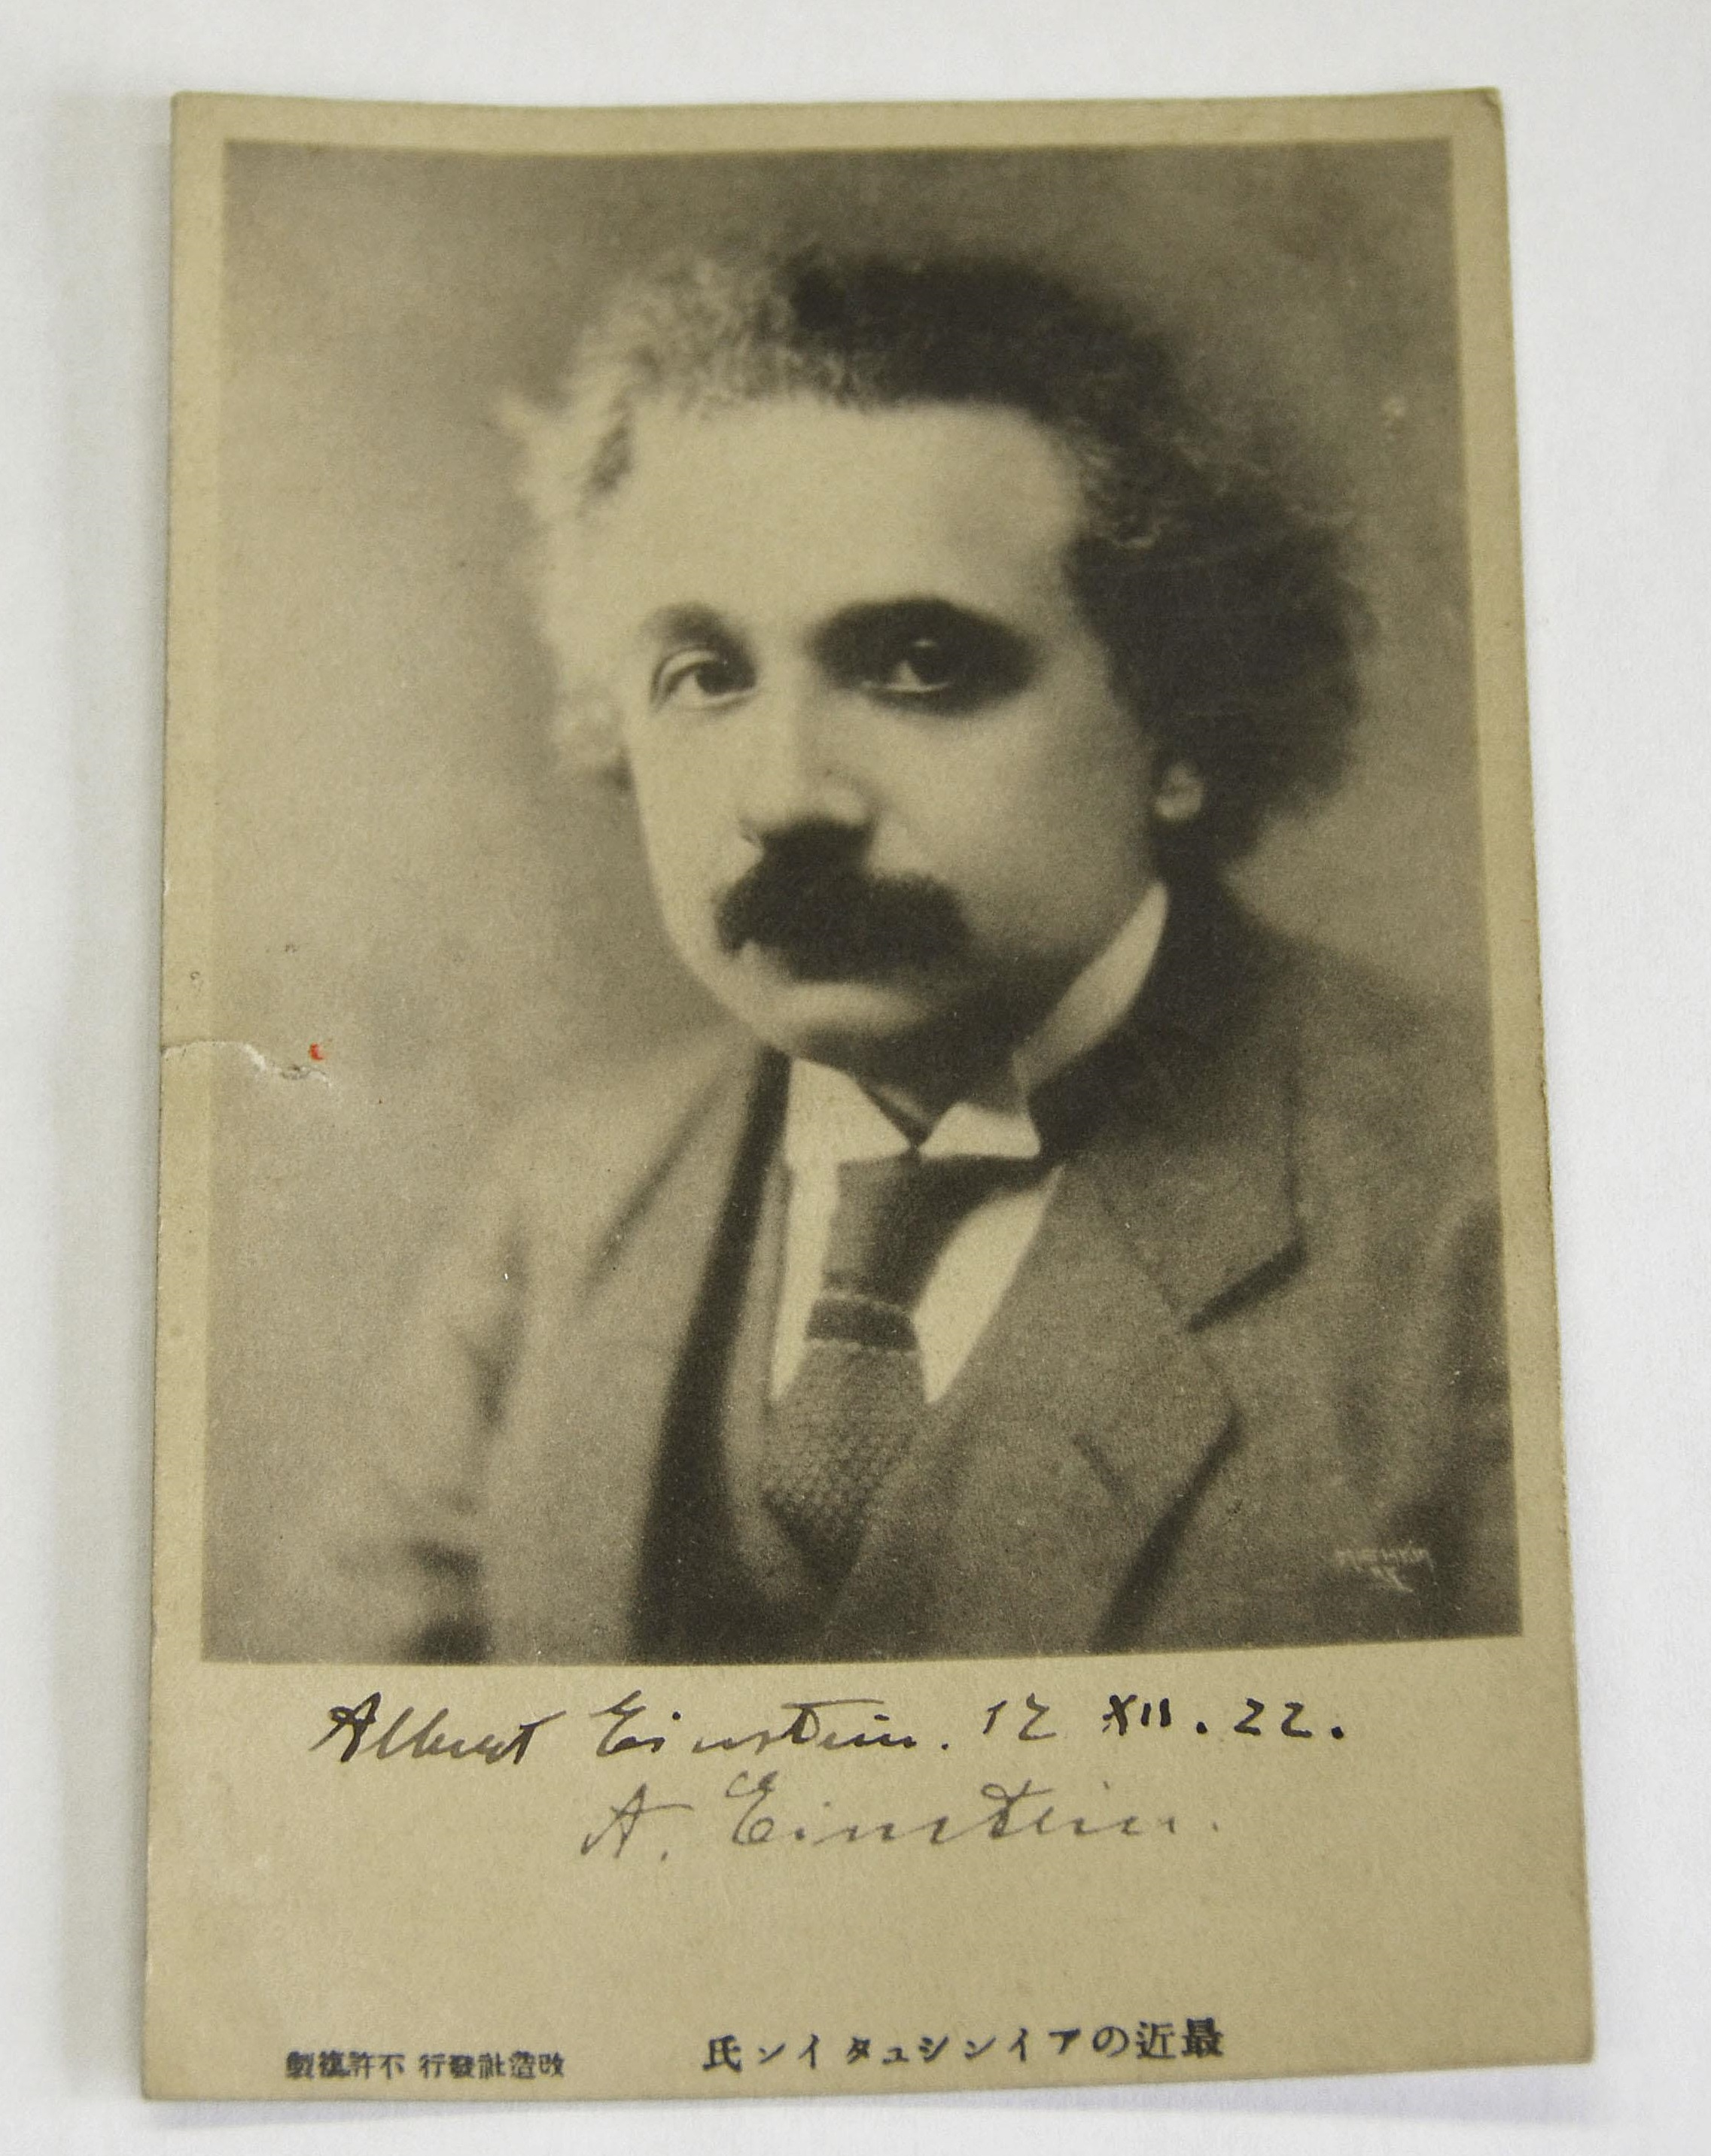 A postcard autographed by physicist Albert Einstein when he visited Japan in 1922 after winning the Nobel Prize was discovered at a museum in Shiga Prefecture. Eizaburo Nishibori Memorial Explorer Museum in Higashiomi, Shiga Prefecture, commemorating Nishibori, who headed Japan's primary Antarctica wintering party, found the postcard in Nishibori's belongings which were donated to the museum by his relatives last fall. The museum plans to exhibit it next year. According to museum staff, Einstein probably presented the postcard, which has the physicist's photo printed on it, to Nishibori when he accompanied Einstein to Kyoto and Nara as a translator. The Nishibori family had also offered to pay for the cost of Einstein's stay in Kyoto, they said. The postcard has Einstein's autograph dated Dec. 12, 1922, the day he visited Nijo Castle in Kyoto.